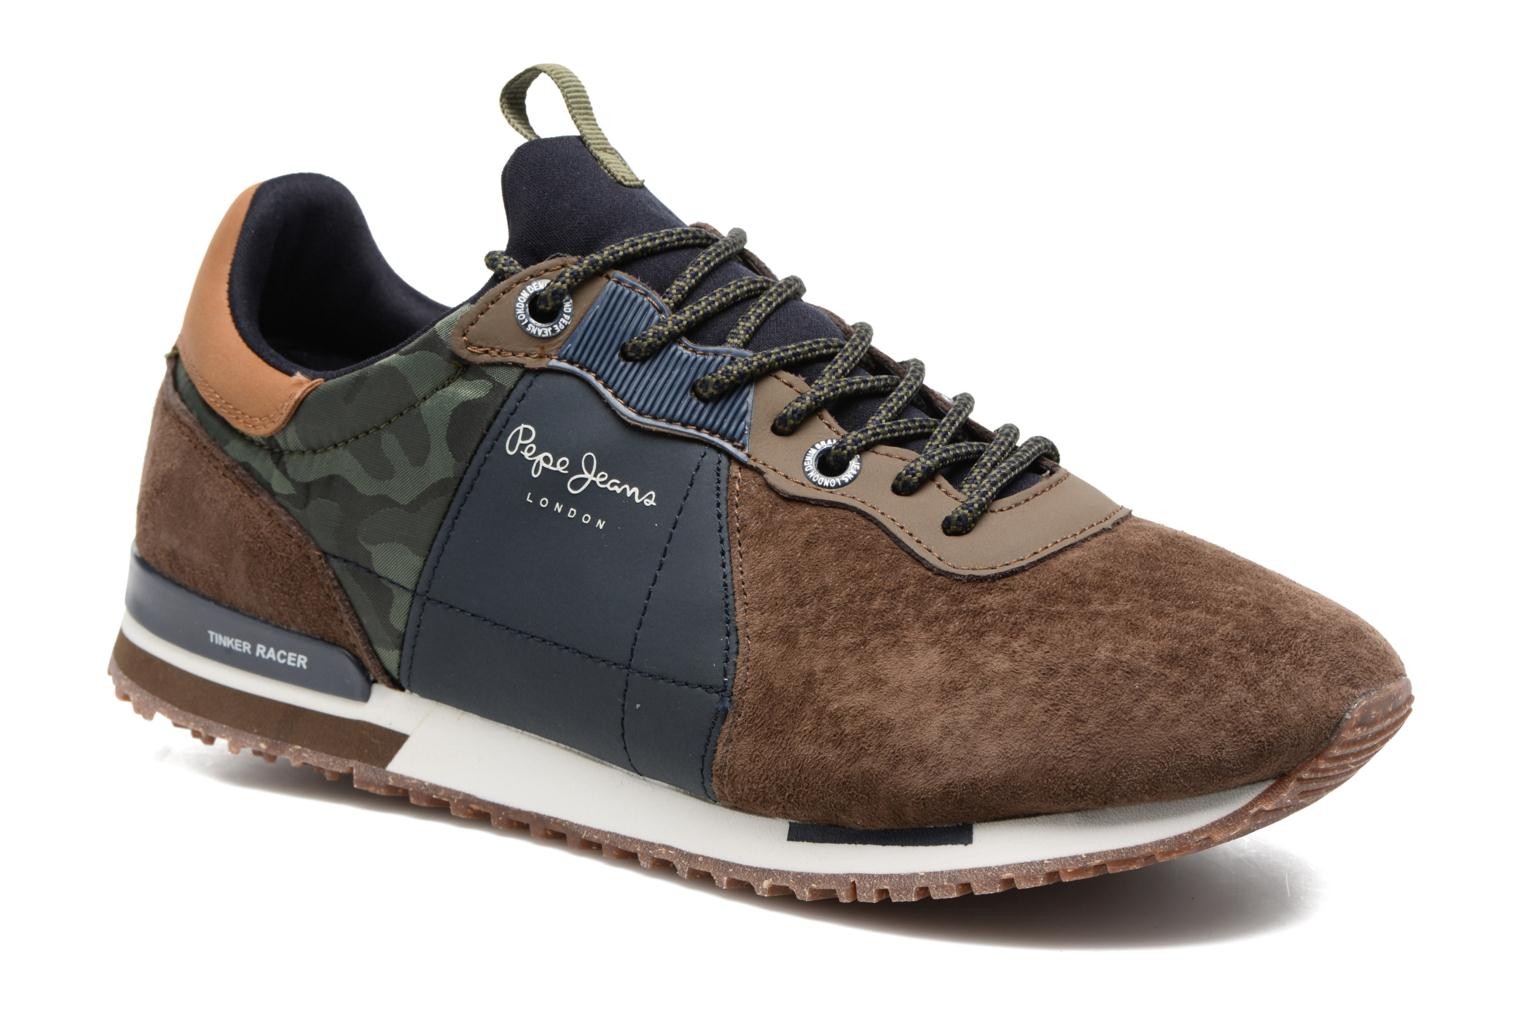 TINKER RACER MIX STAG